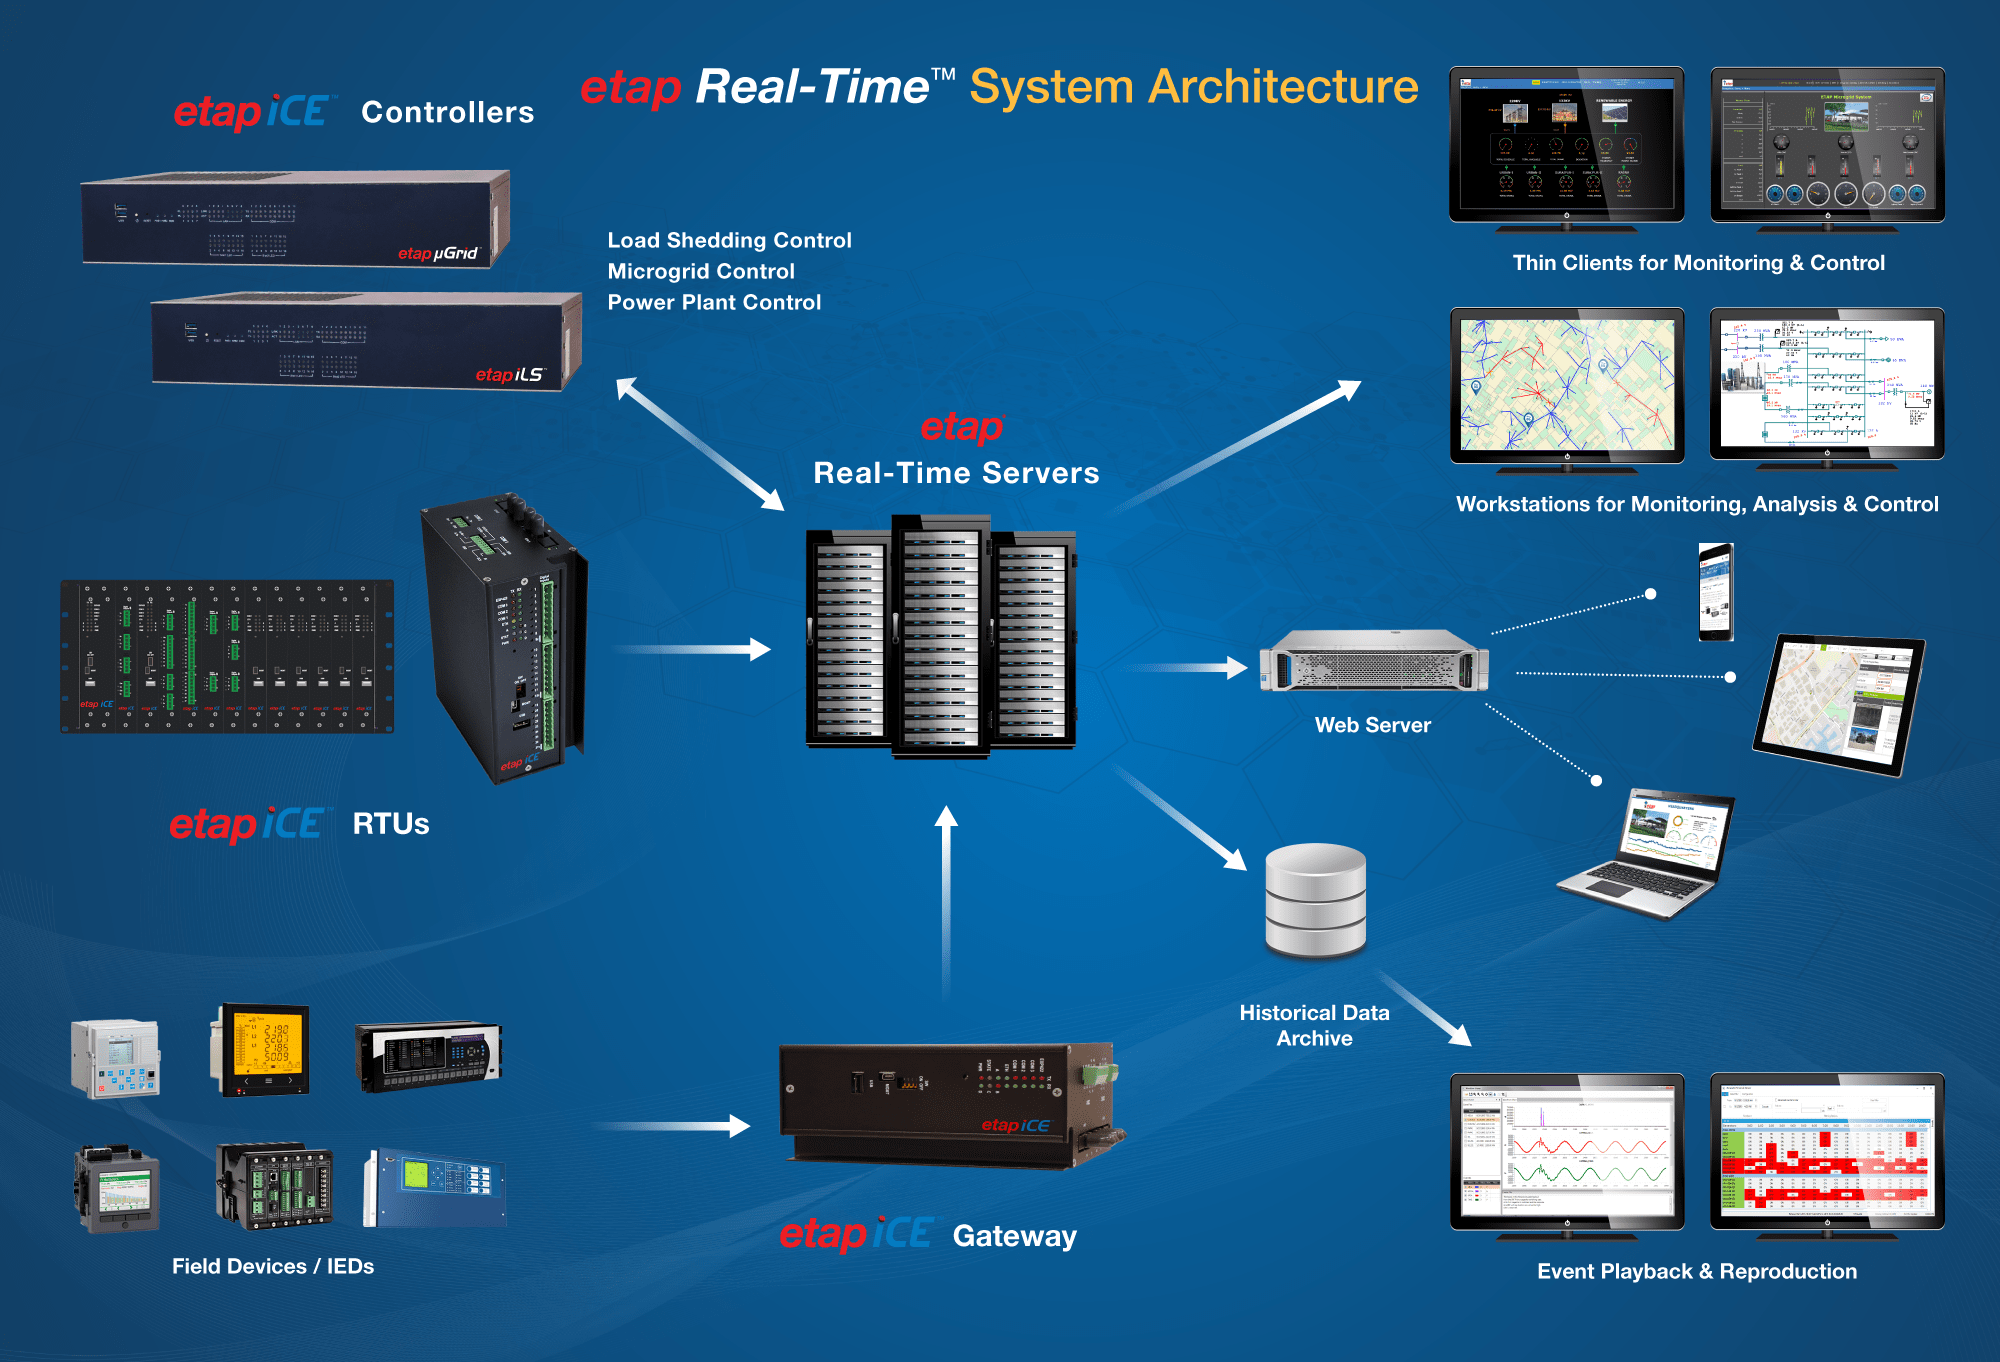 etap iCE Communication Architecture Diagram